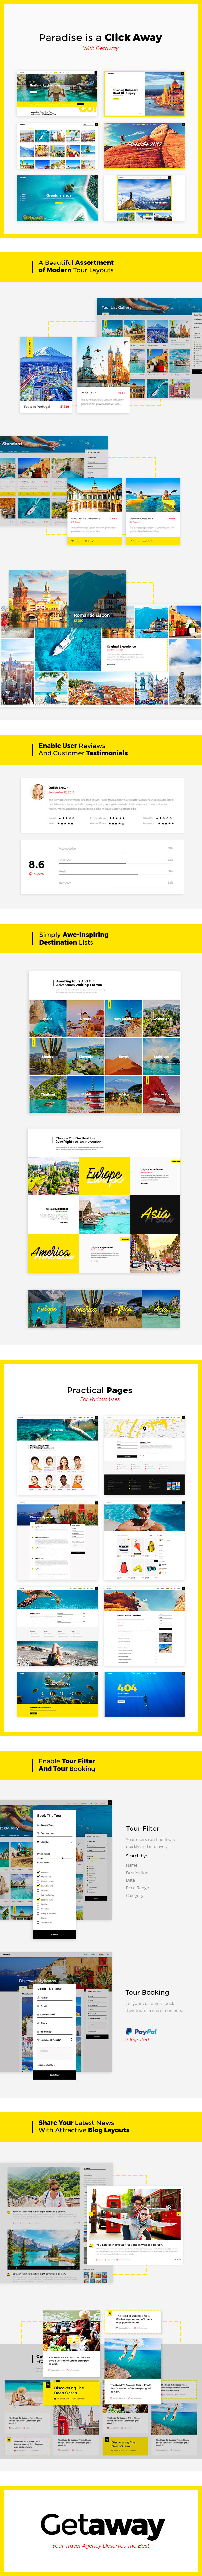 WordPress theme Getaway - An Upbeat Travel and Tourism Theme (Travel)